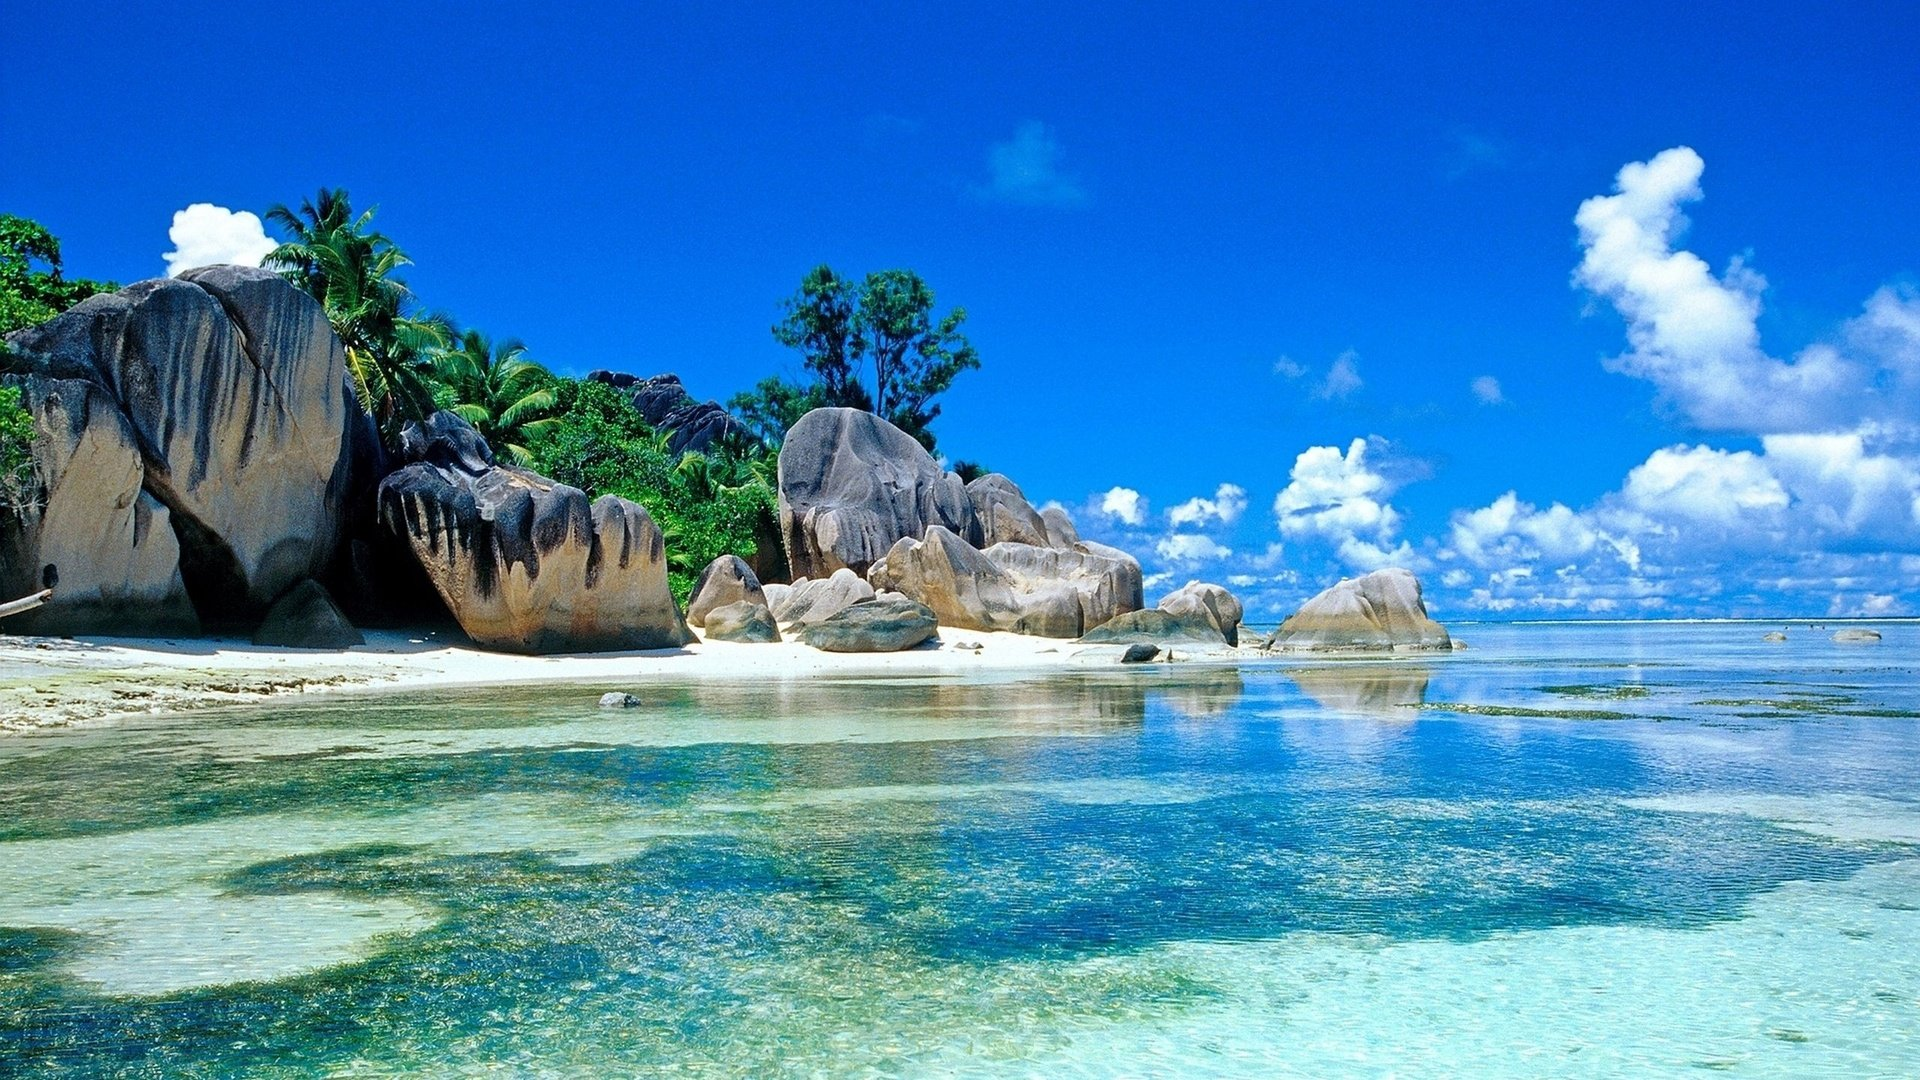 Beach Screensavers And Wallpapers Tropical Beach With Large Rocks 1920x1080